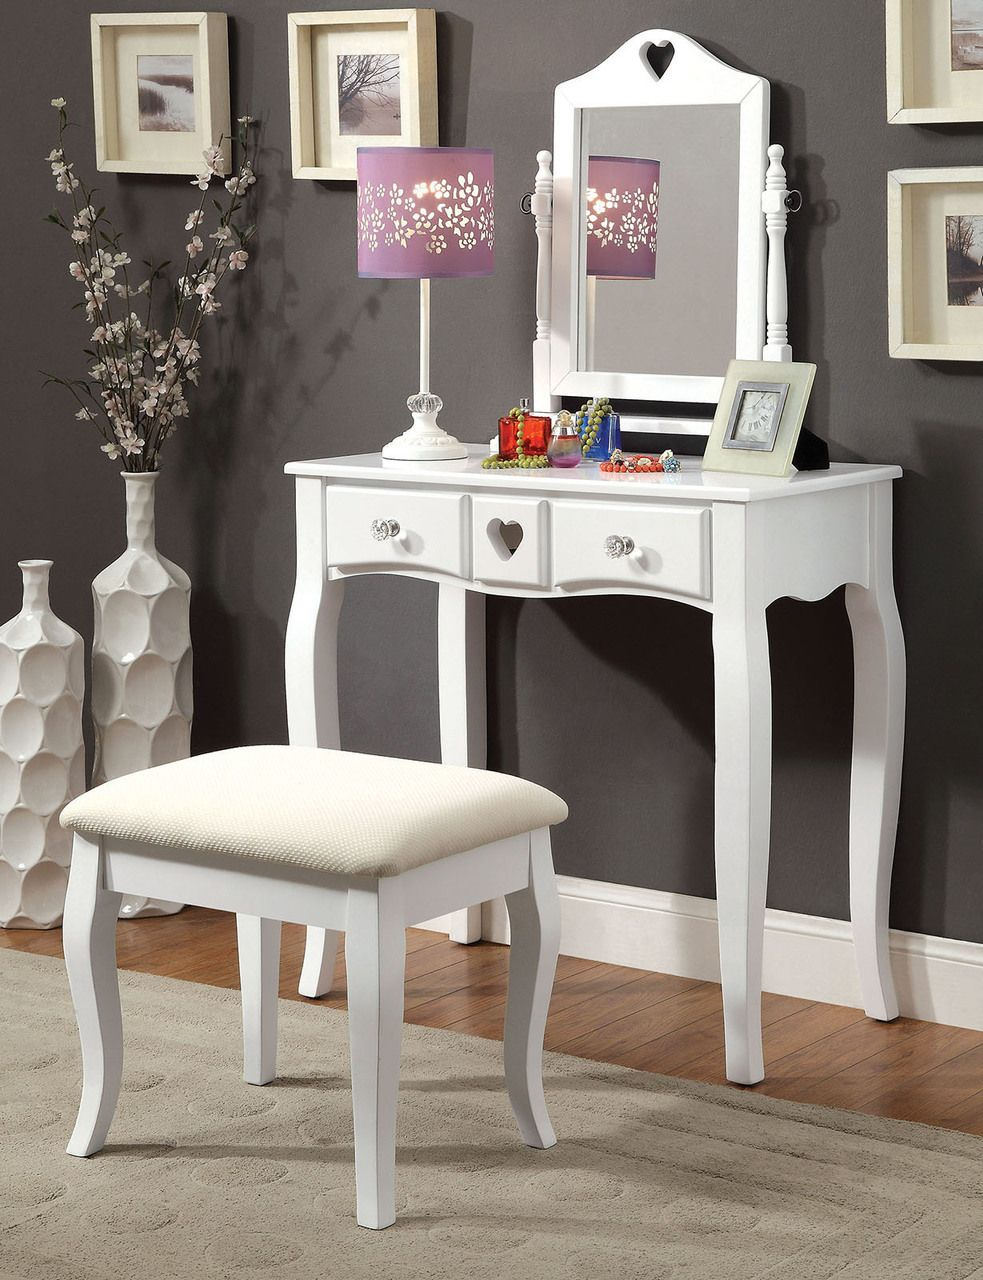 Vanity tables makeup vanity tables makeup desk vanity tables